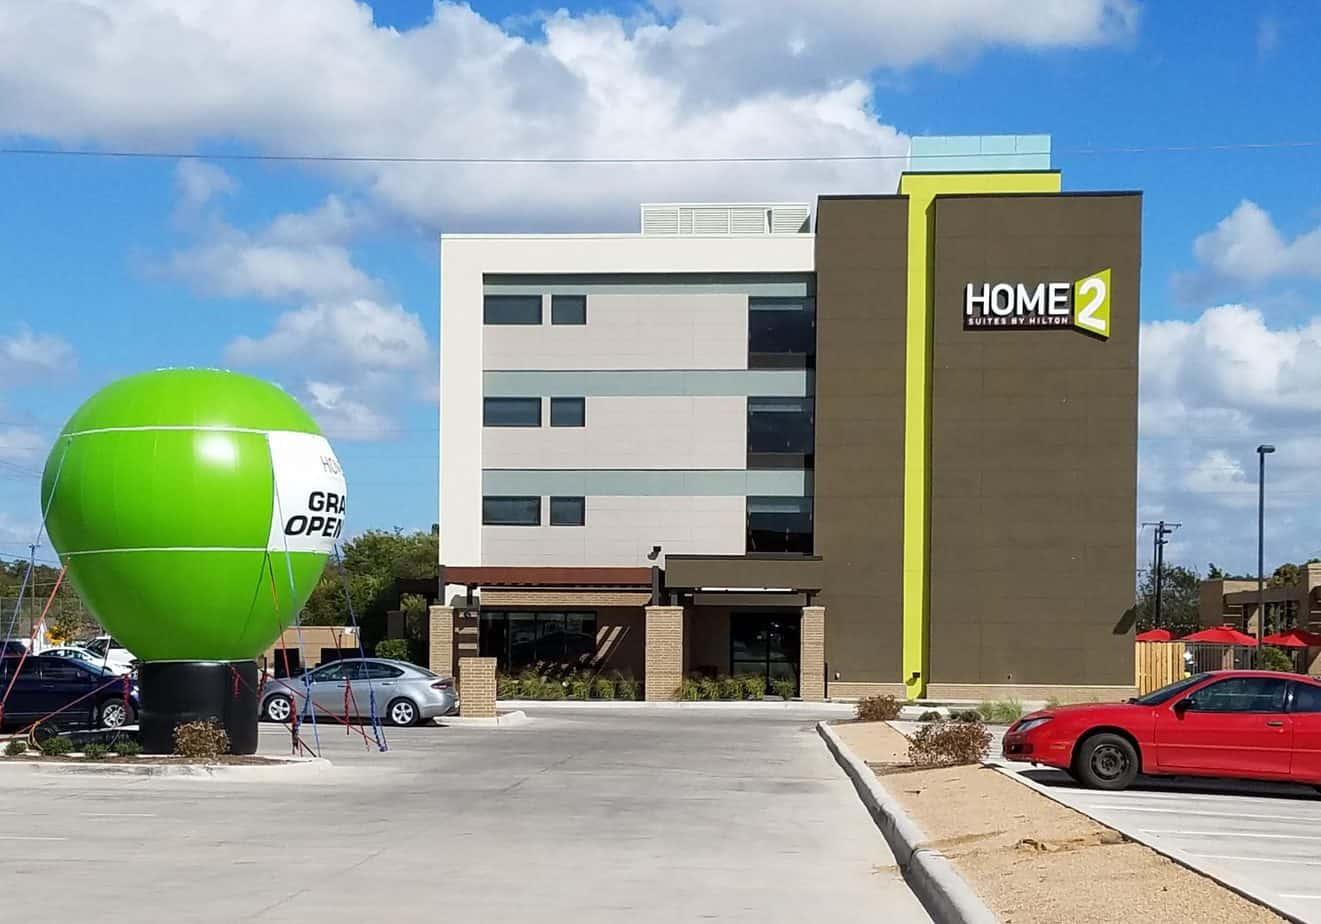 green balloon to advertise a hotel